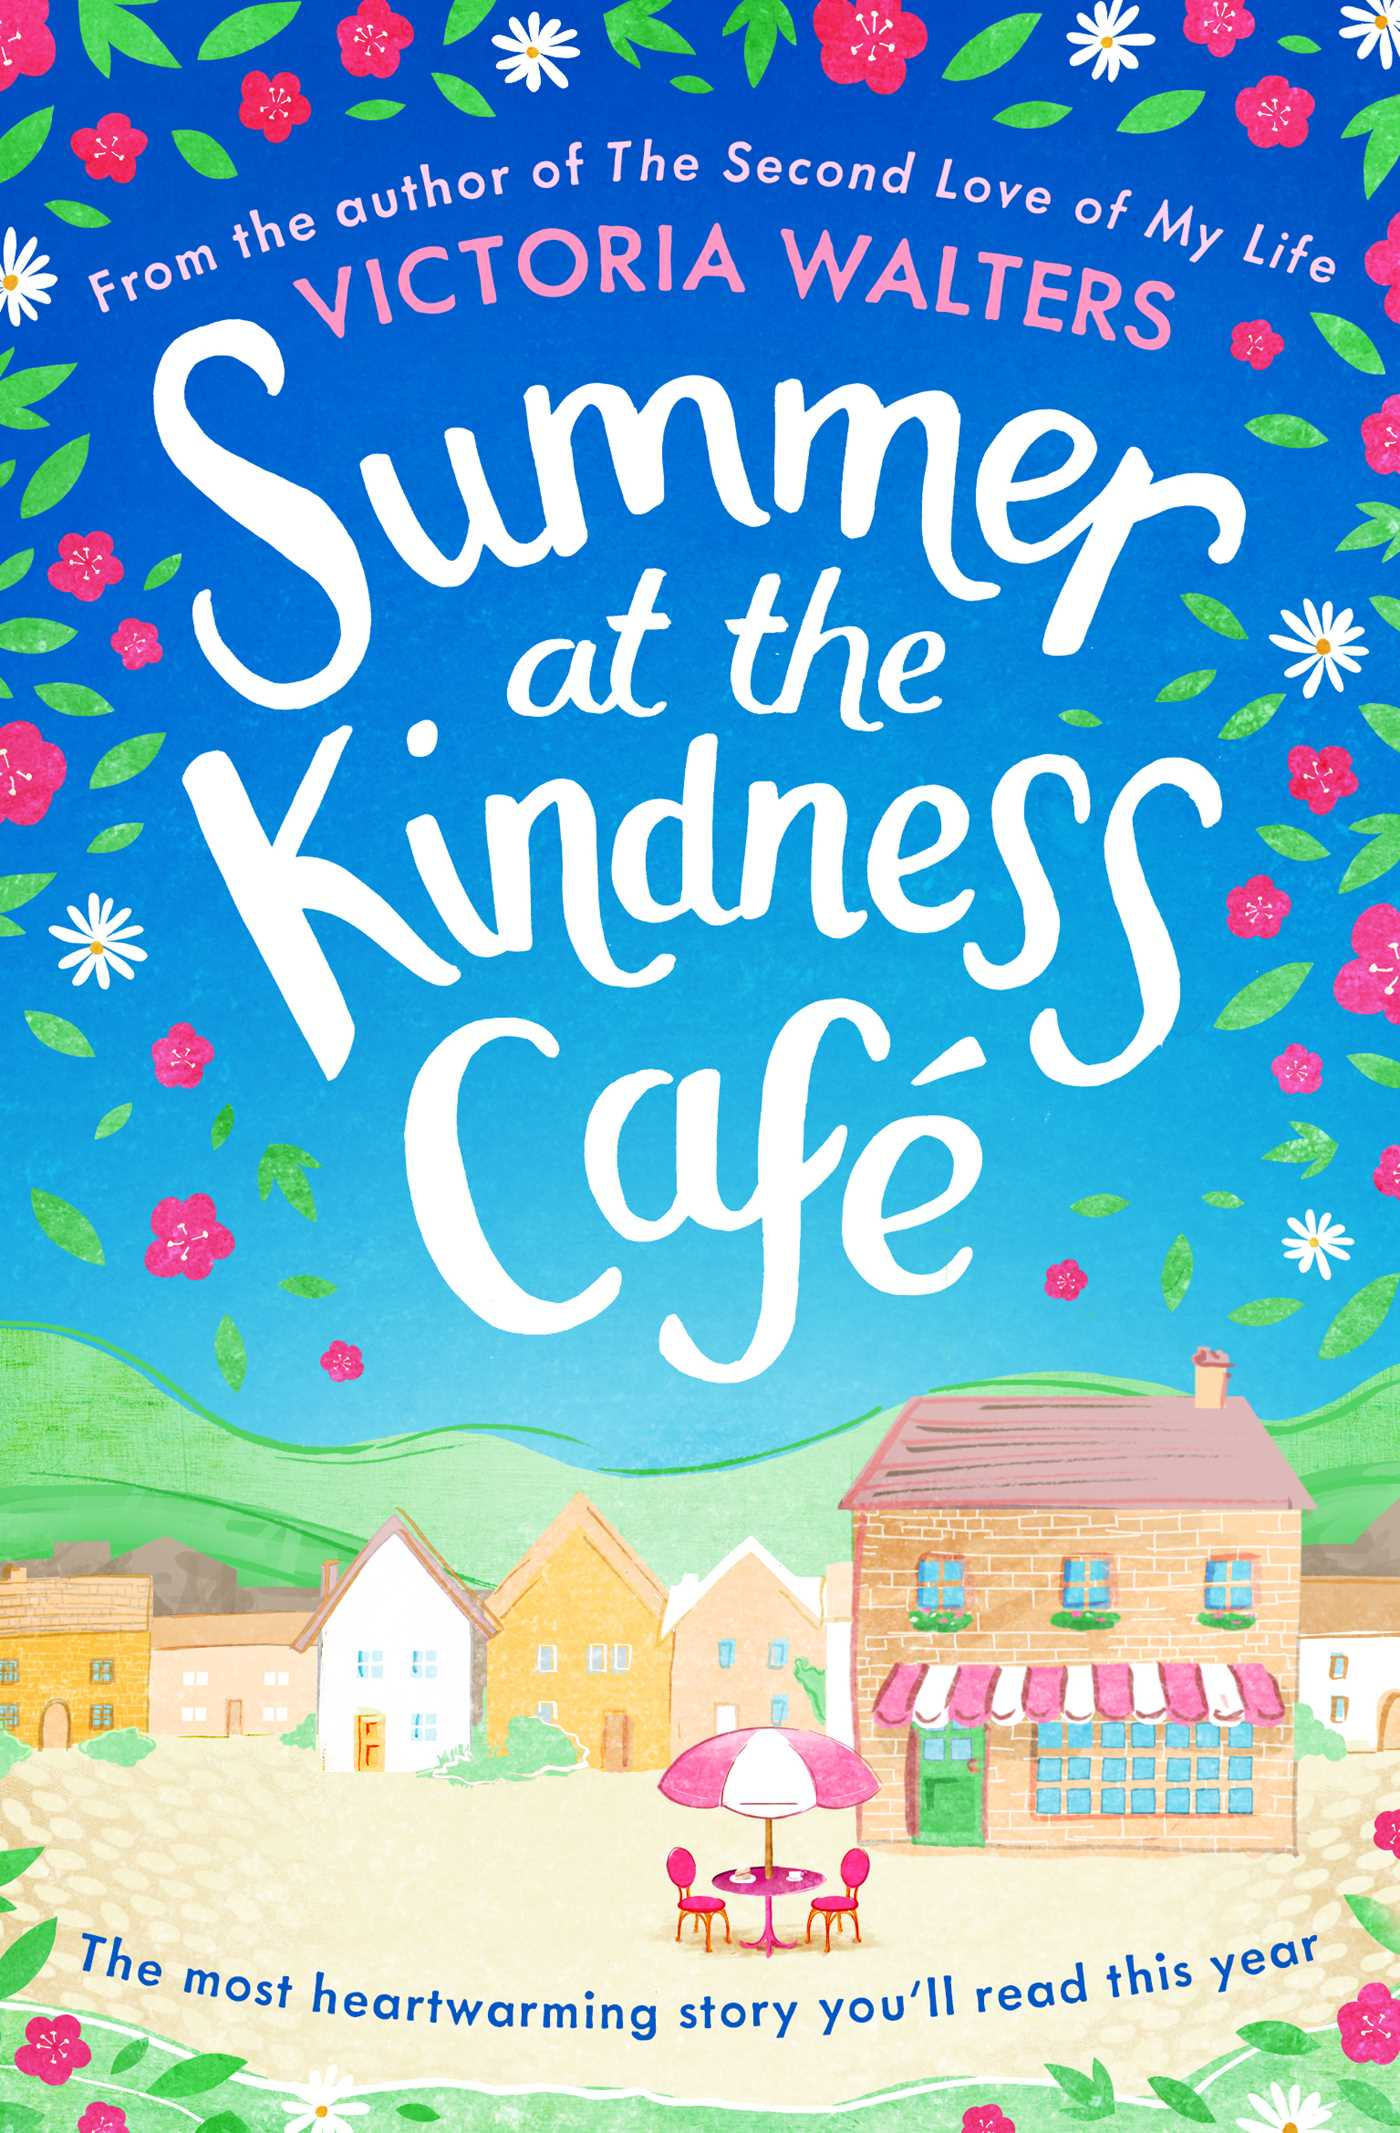 Summer at the kindness cafe 9781471181177 hr